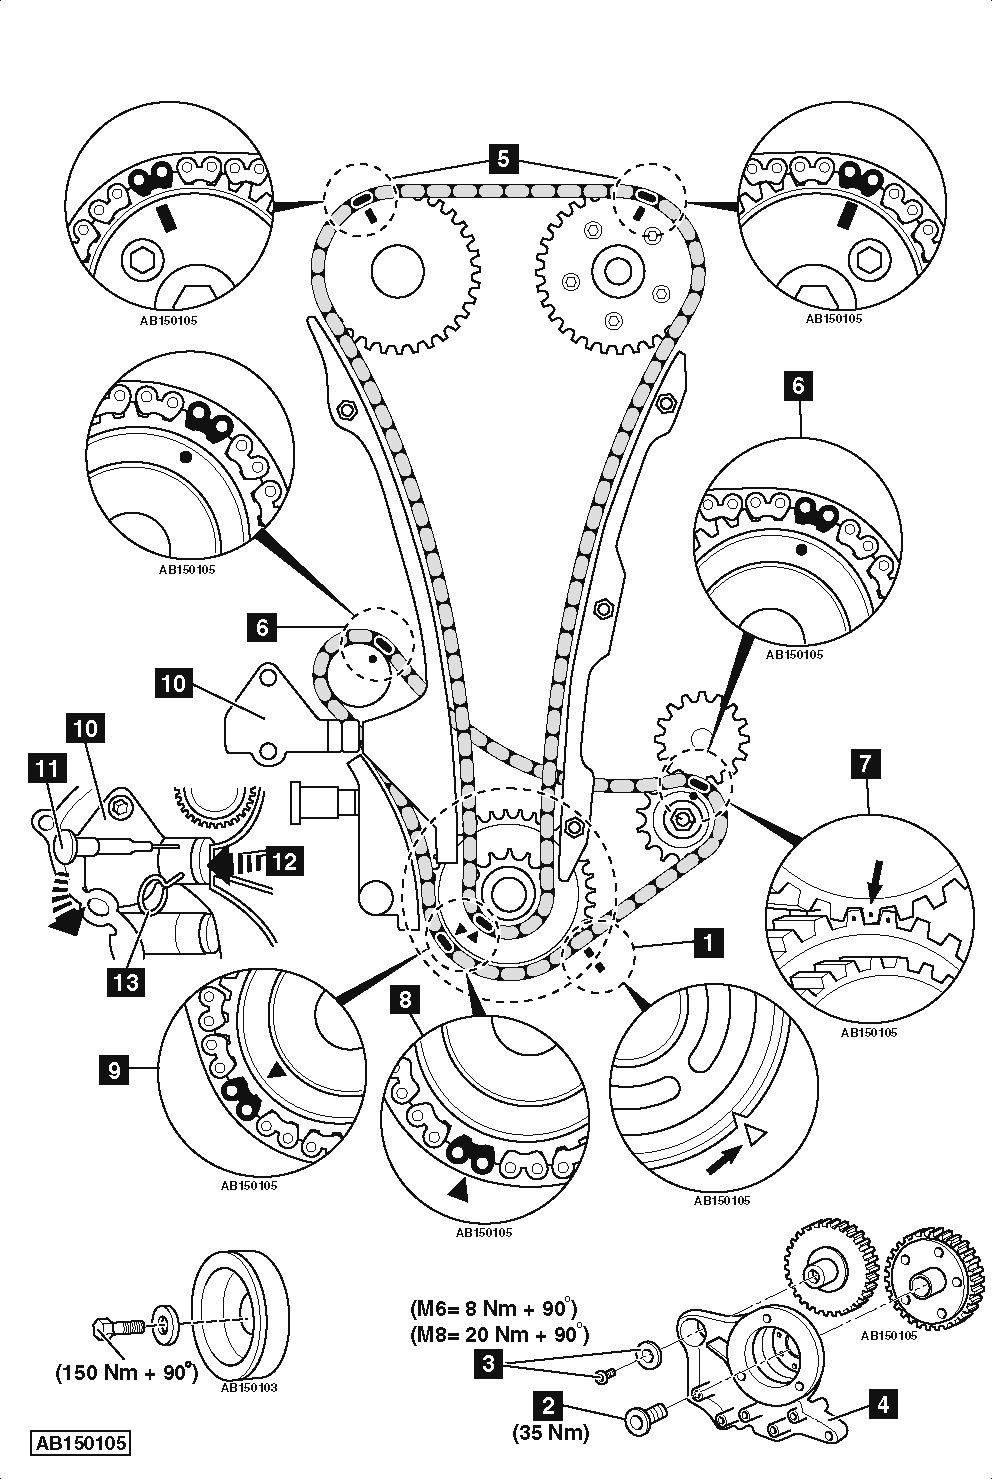 saab 9 3 engine diagram get free image about wiring diagram serpentine belt  diagram for a 2000 lincoln ls Jaguar F-Type